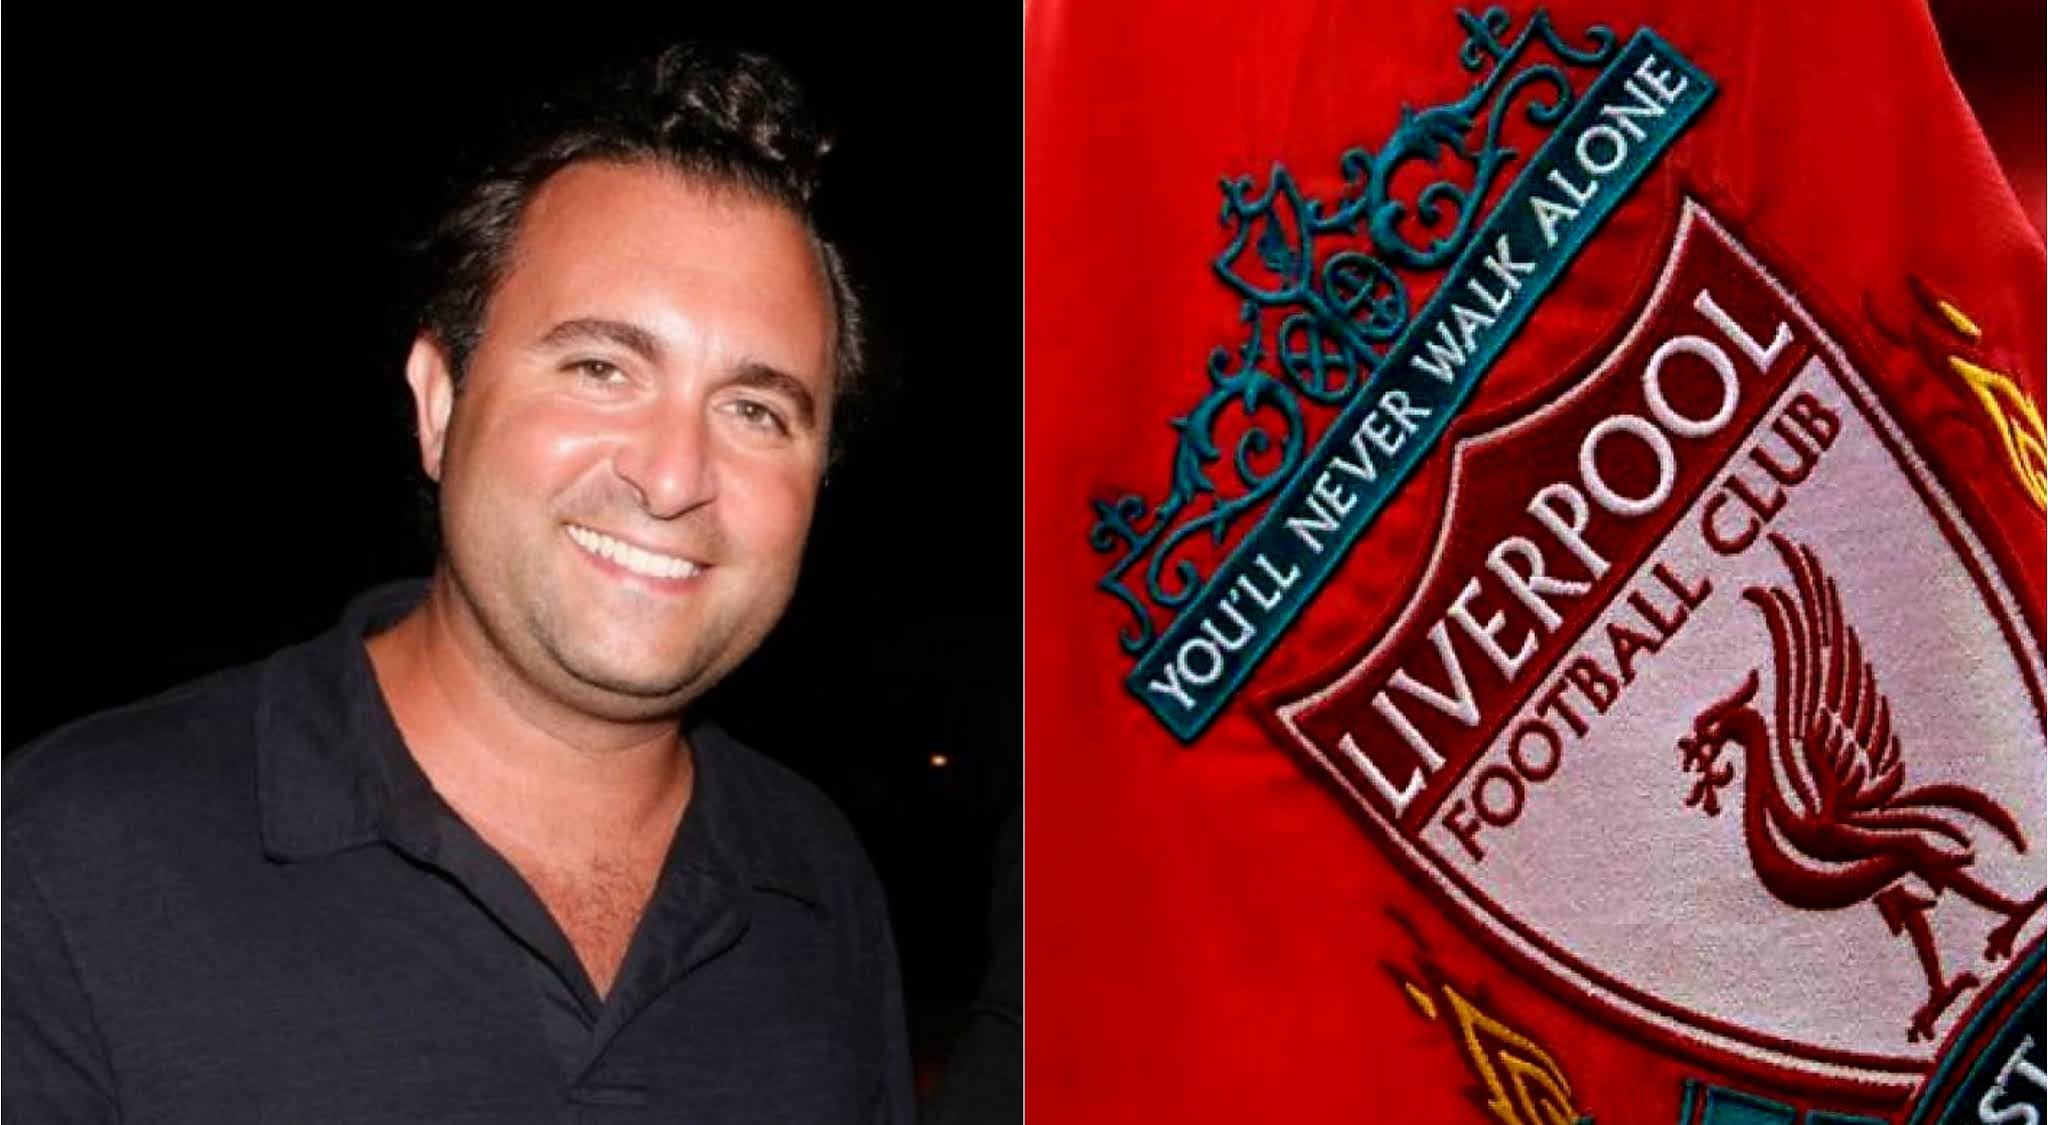 Gerry Cardinale is the man behind potential FSG Liverpool merger with RedBall Acquisitions.